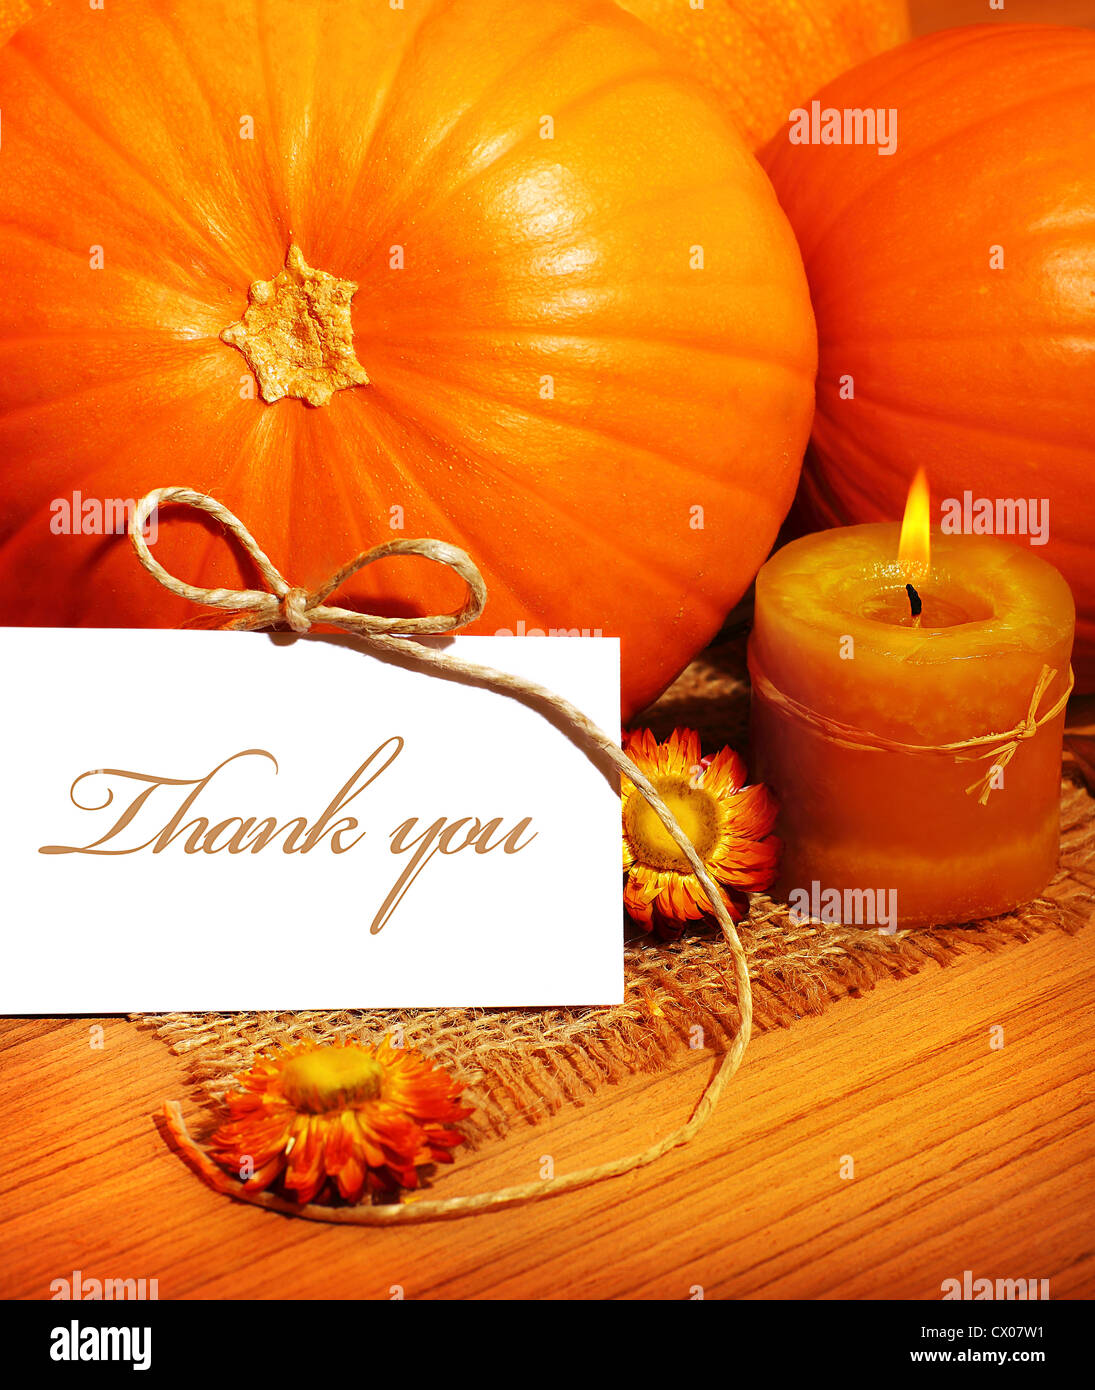 Thank You Thanksgiving Greeting Card With Pumpkin